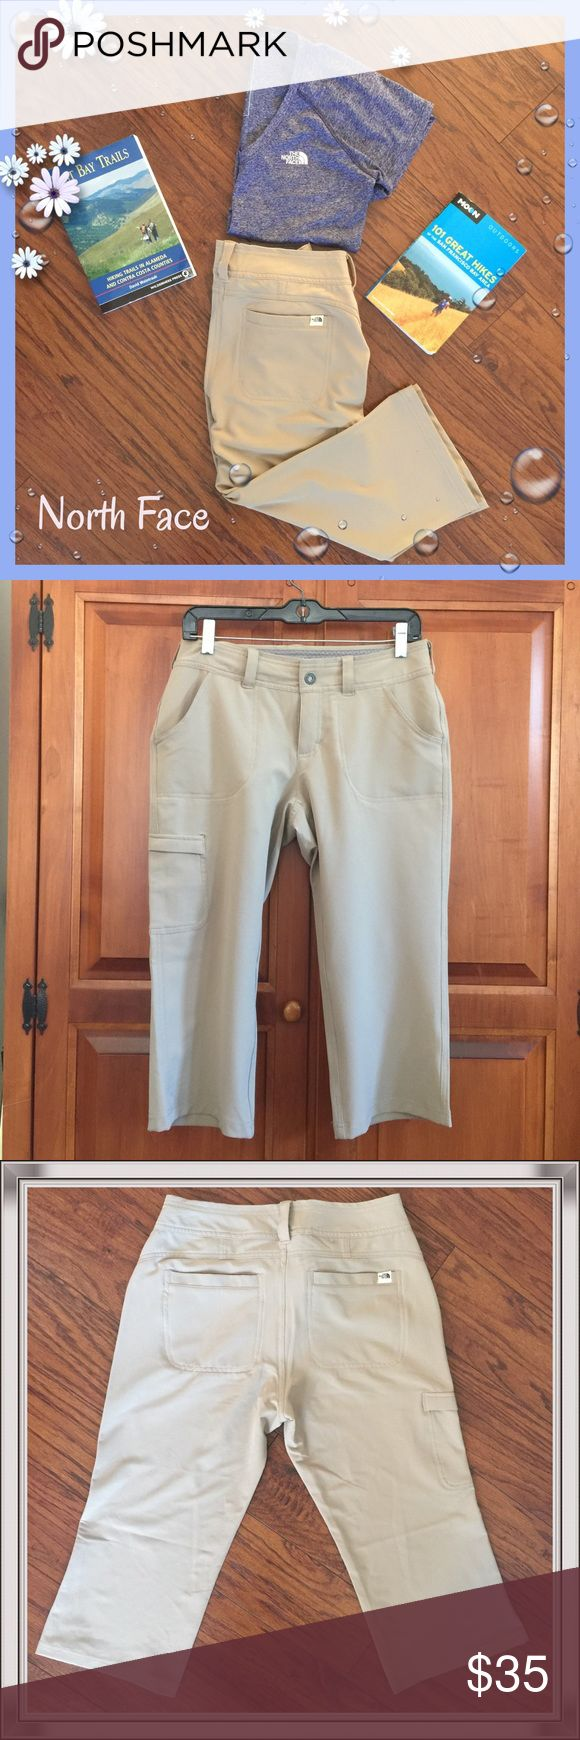 The North Face khaki capris Super cute The North Face khaki Capri. These are new without tag. They have a Velcro pocket on the left leg, plus two pockets on the front and two on the back. These would be great for hiking, biking, camping or whatever activity you're into. The North Face Pants Capris